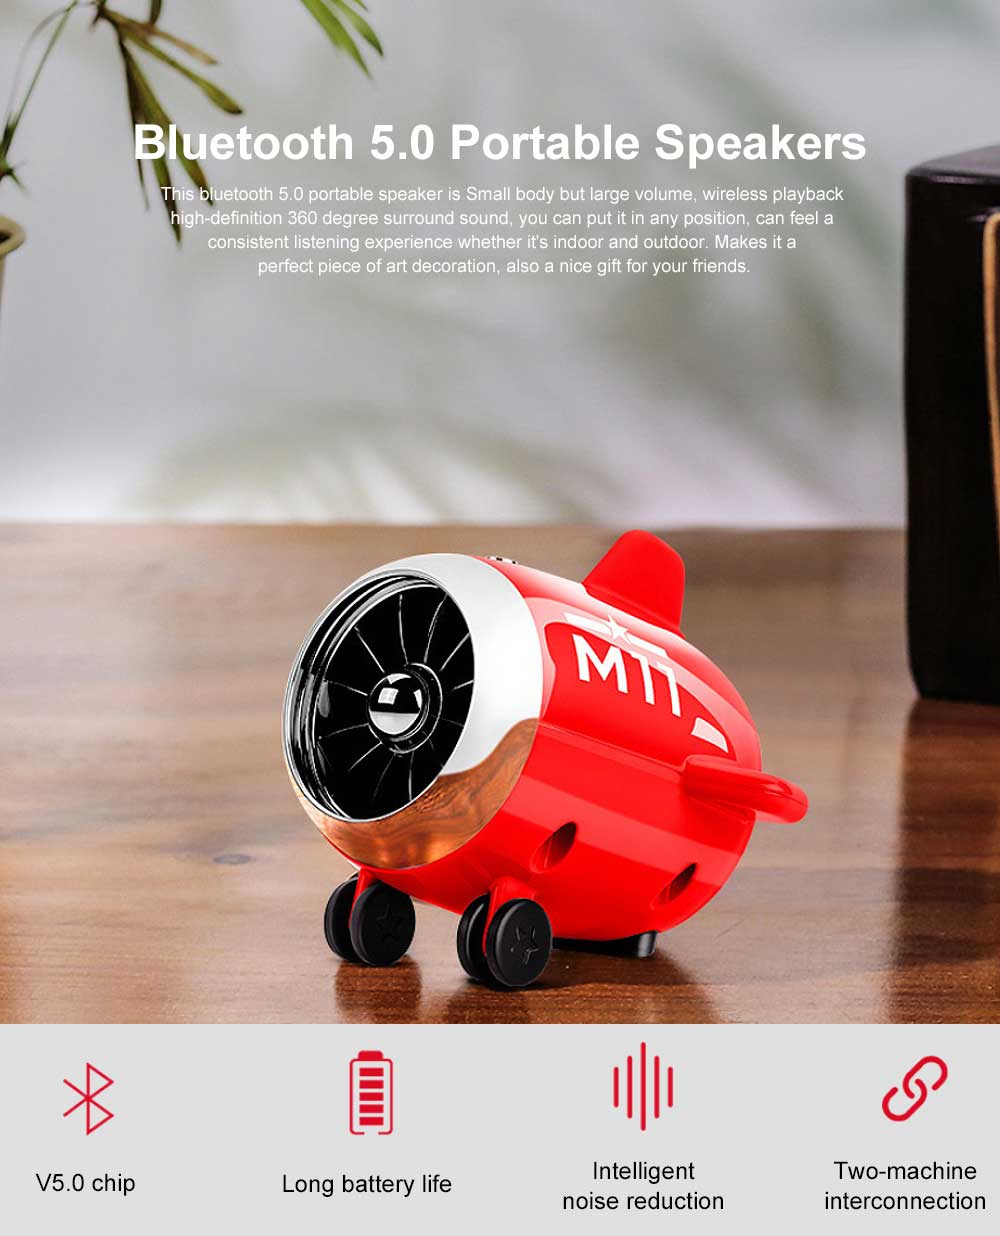 Bluetooth 5.0 Portable Speakers Cute Airplane Shape Mini Bluetooth Wireless Speaker with TWS Technology for iOS Android 0